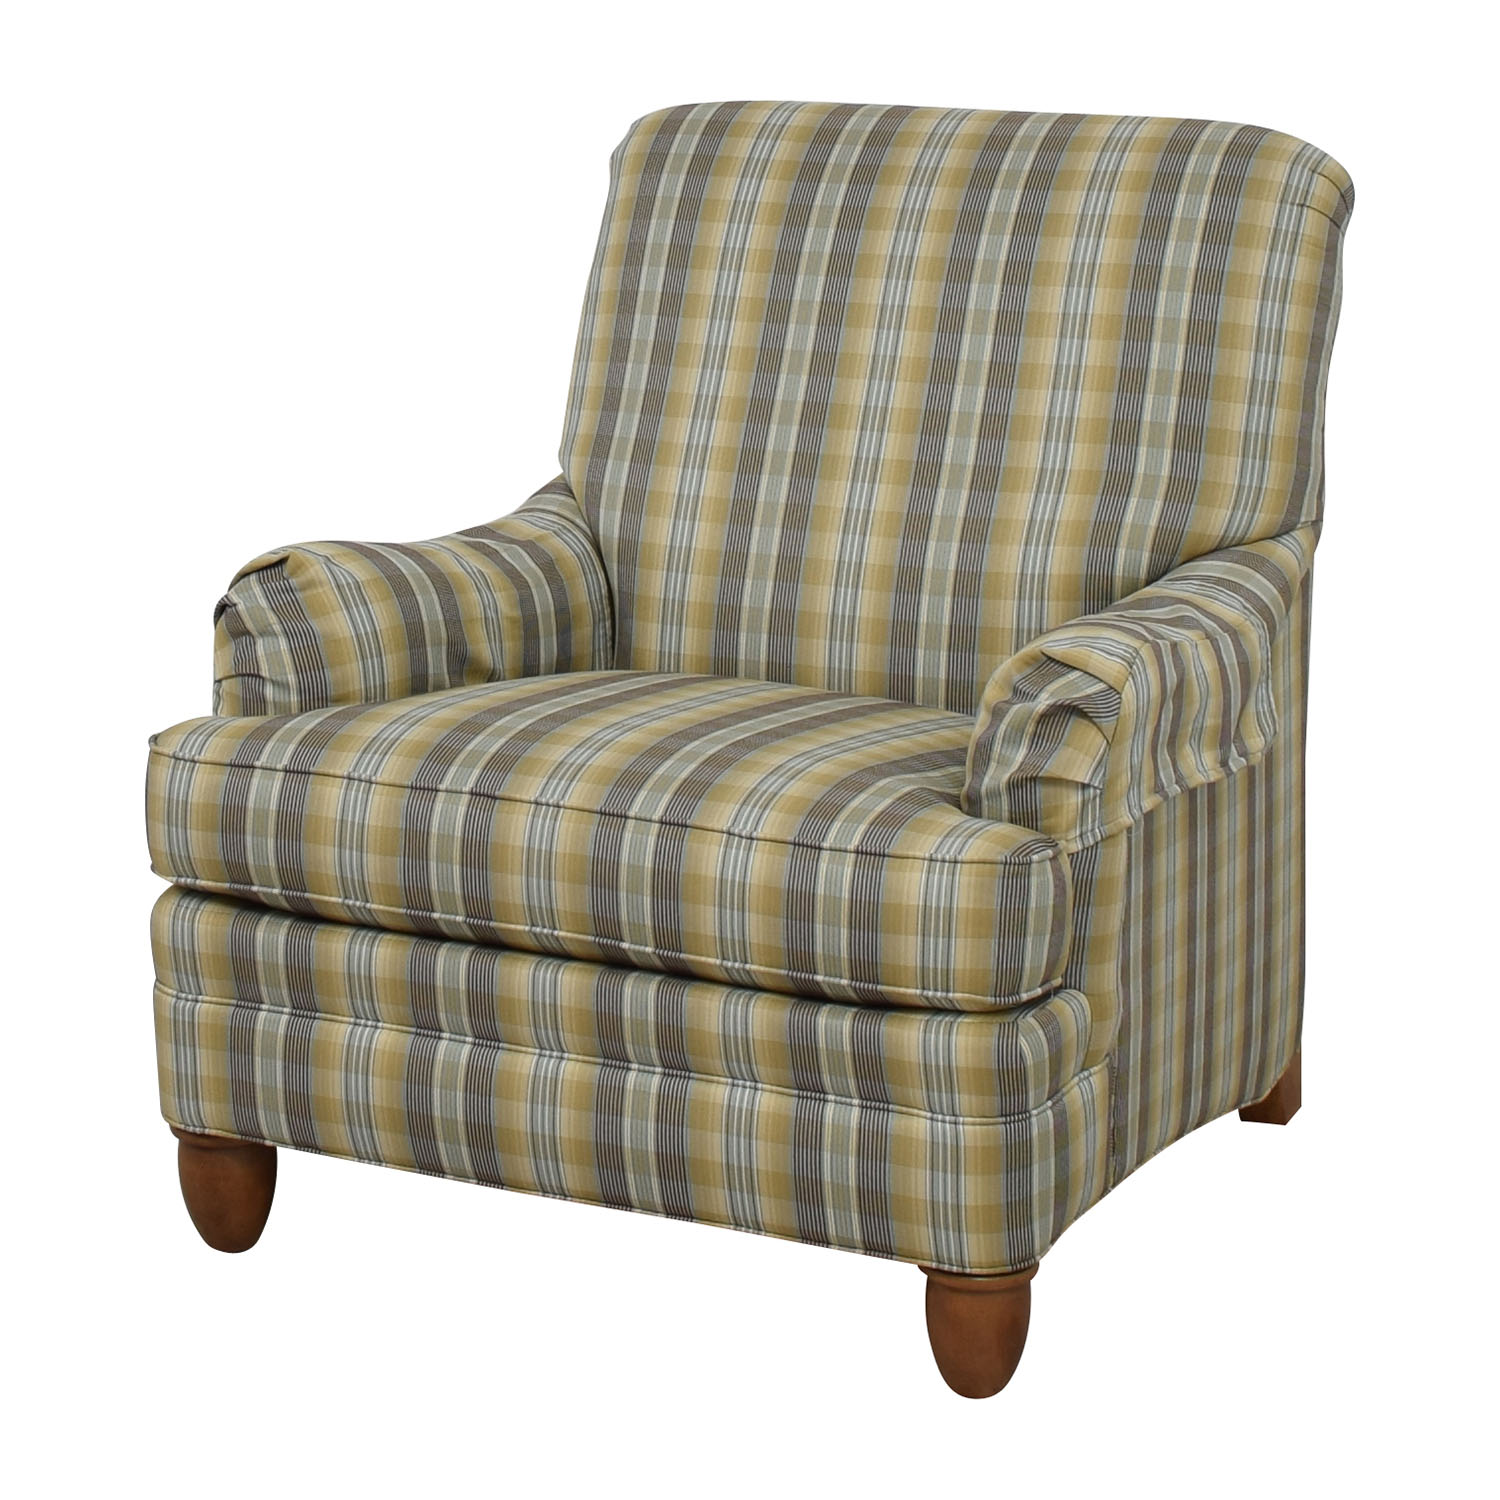 ethan allen recliners chairs teak chaise lounge sale 79 off plaid arm chair